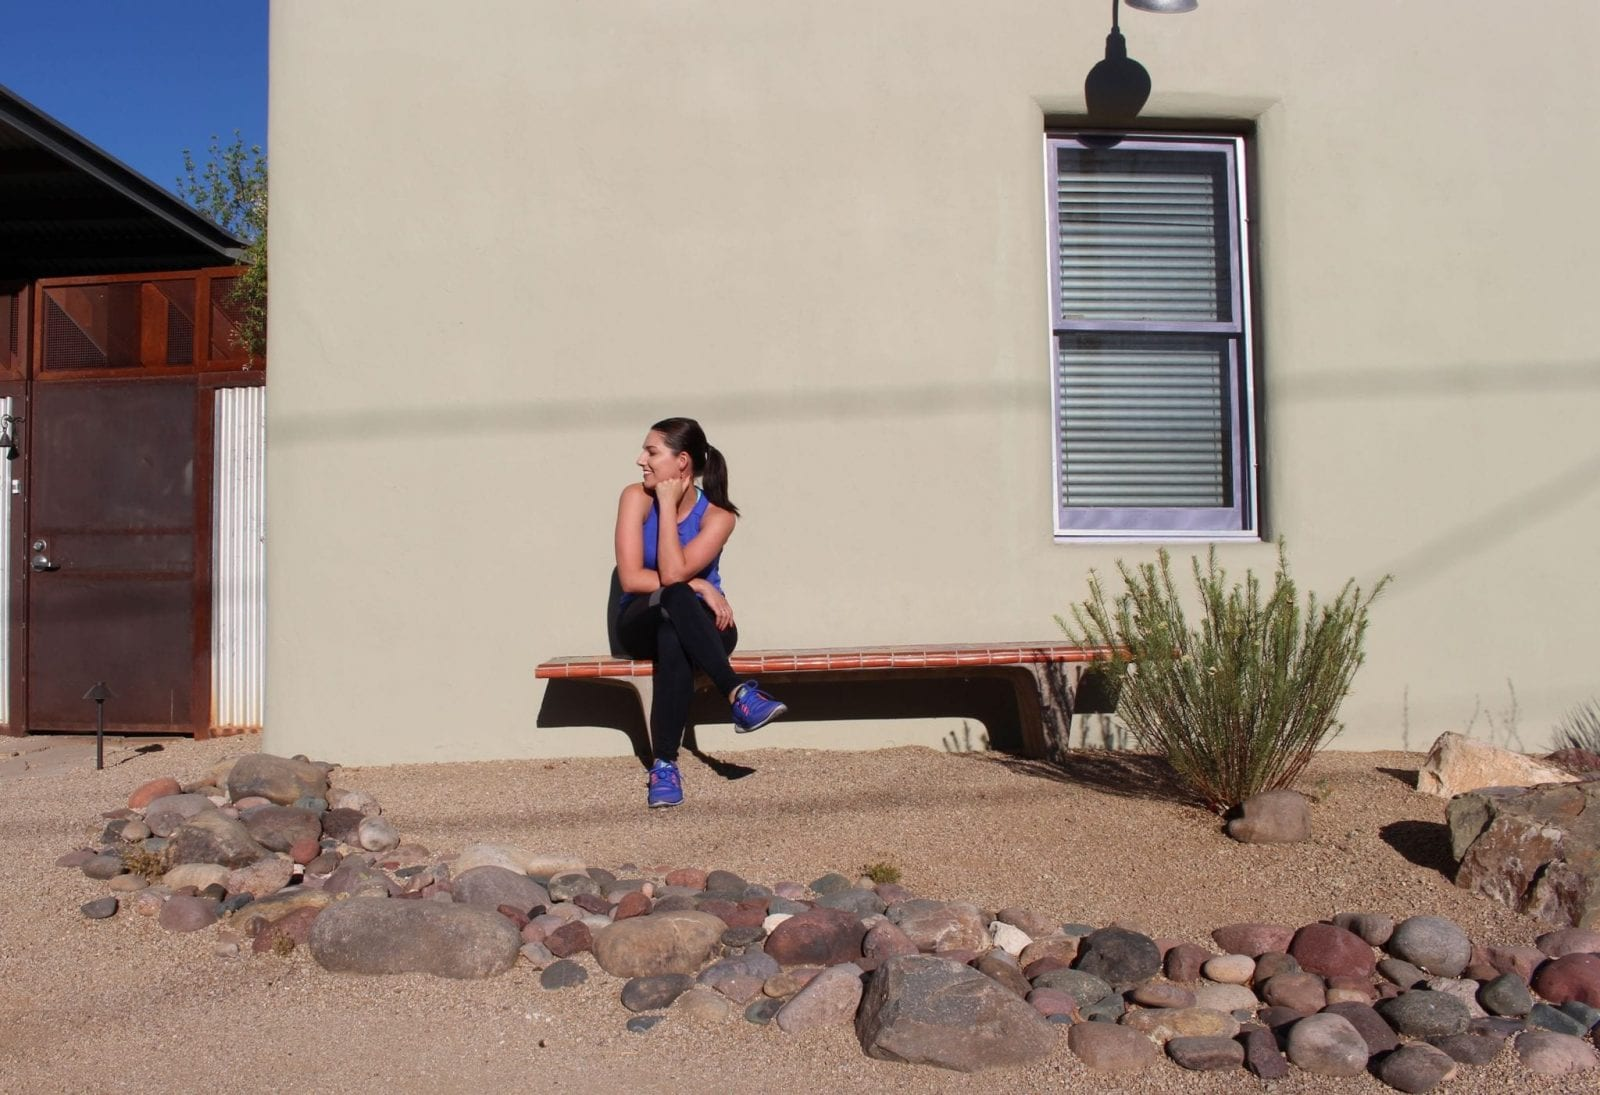 This is a photo of me sitting on a bench in my Sweaty Betty workout attire.